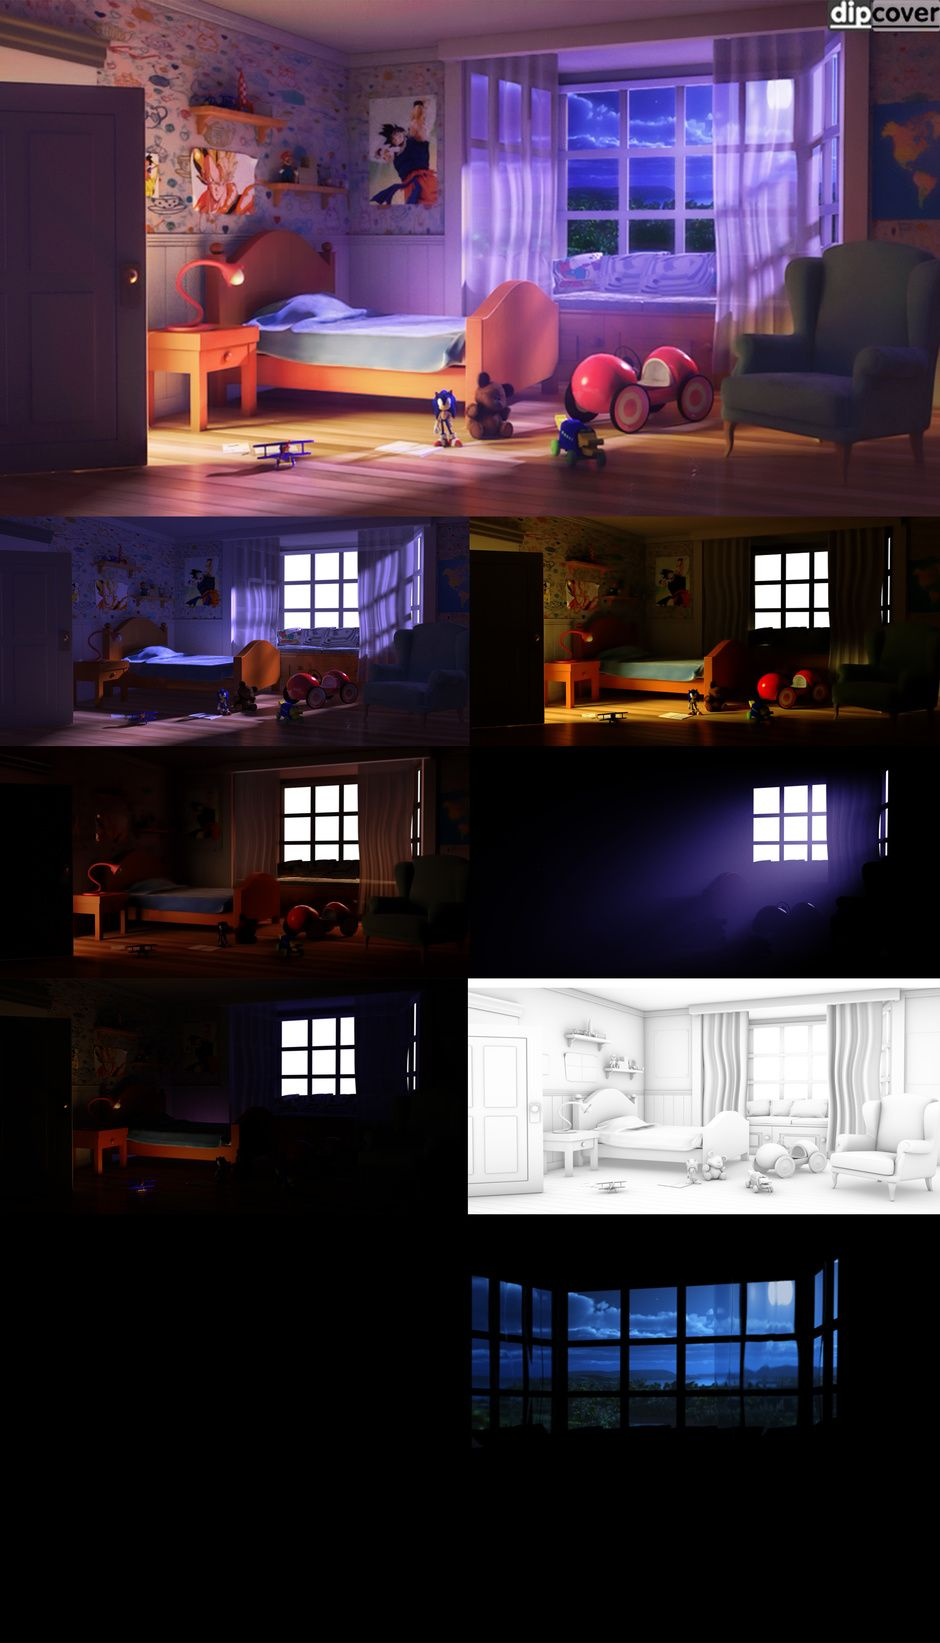 A Night in my Childhood by arthaskooldude | Architecture | 3D | CGSociety